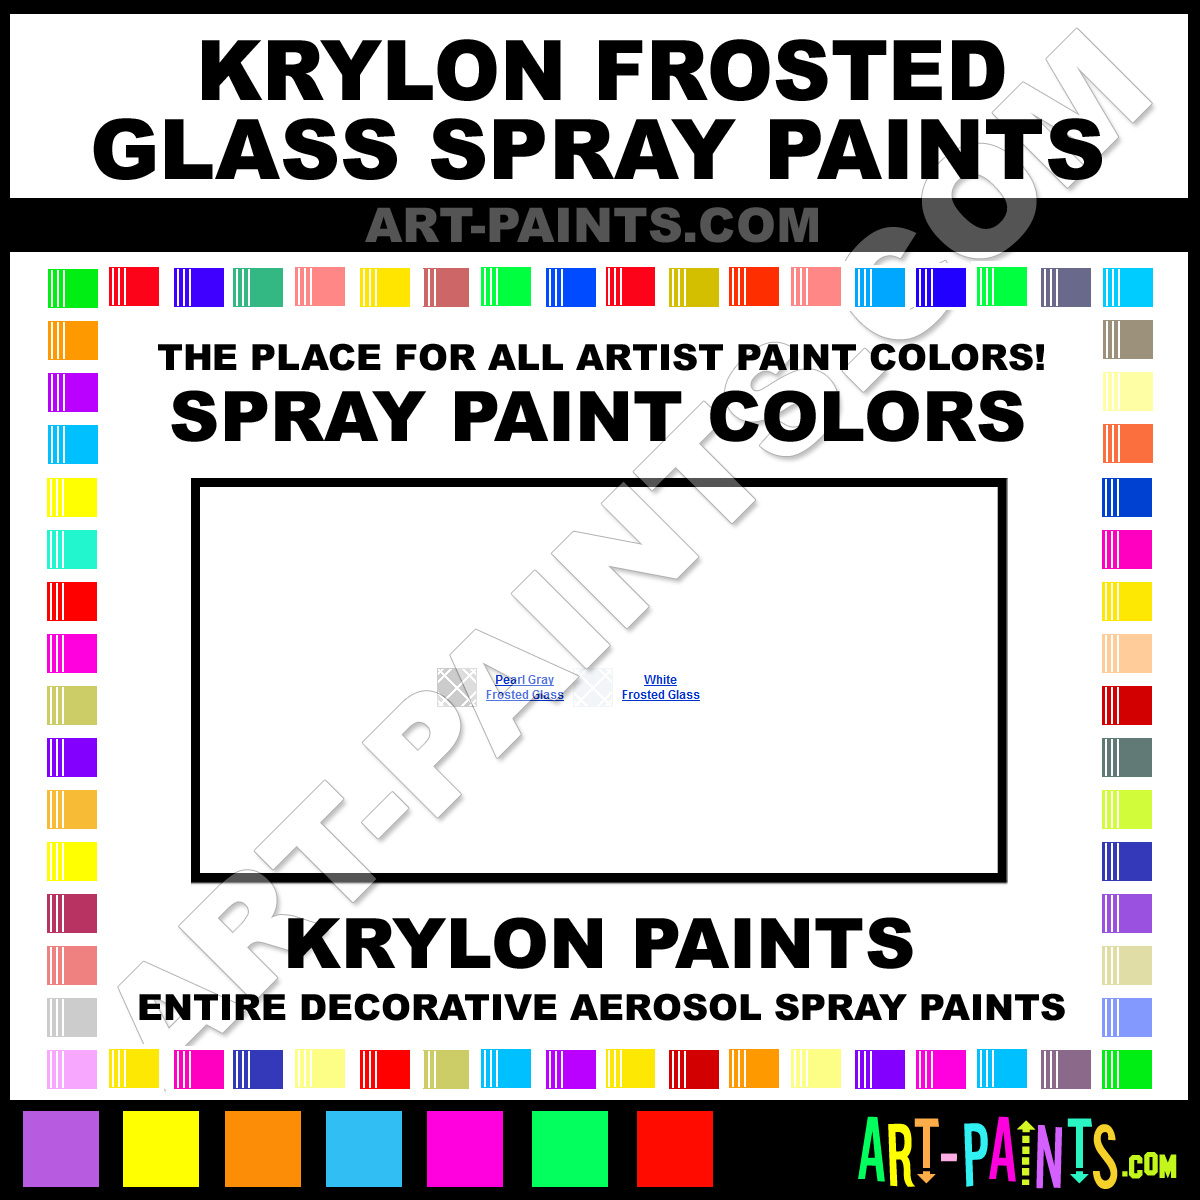 Krylon Frosted Glass Spray Paint Aerosol Colors Krylon Frosted Glass Paint Decorative Colors